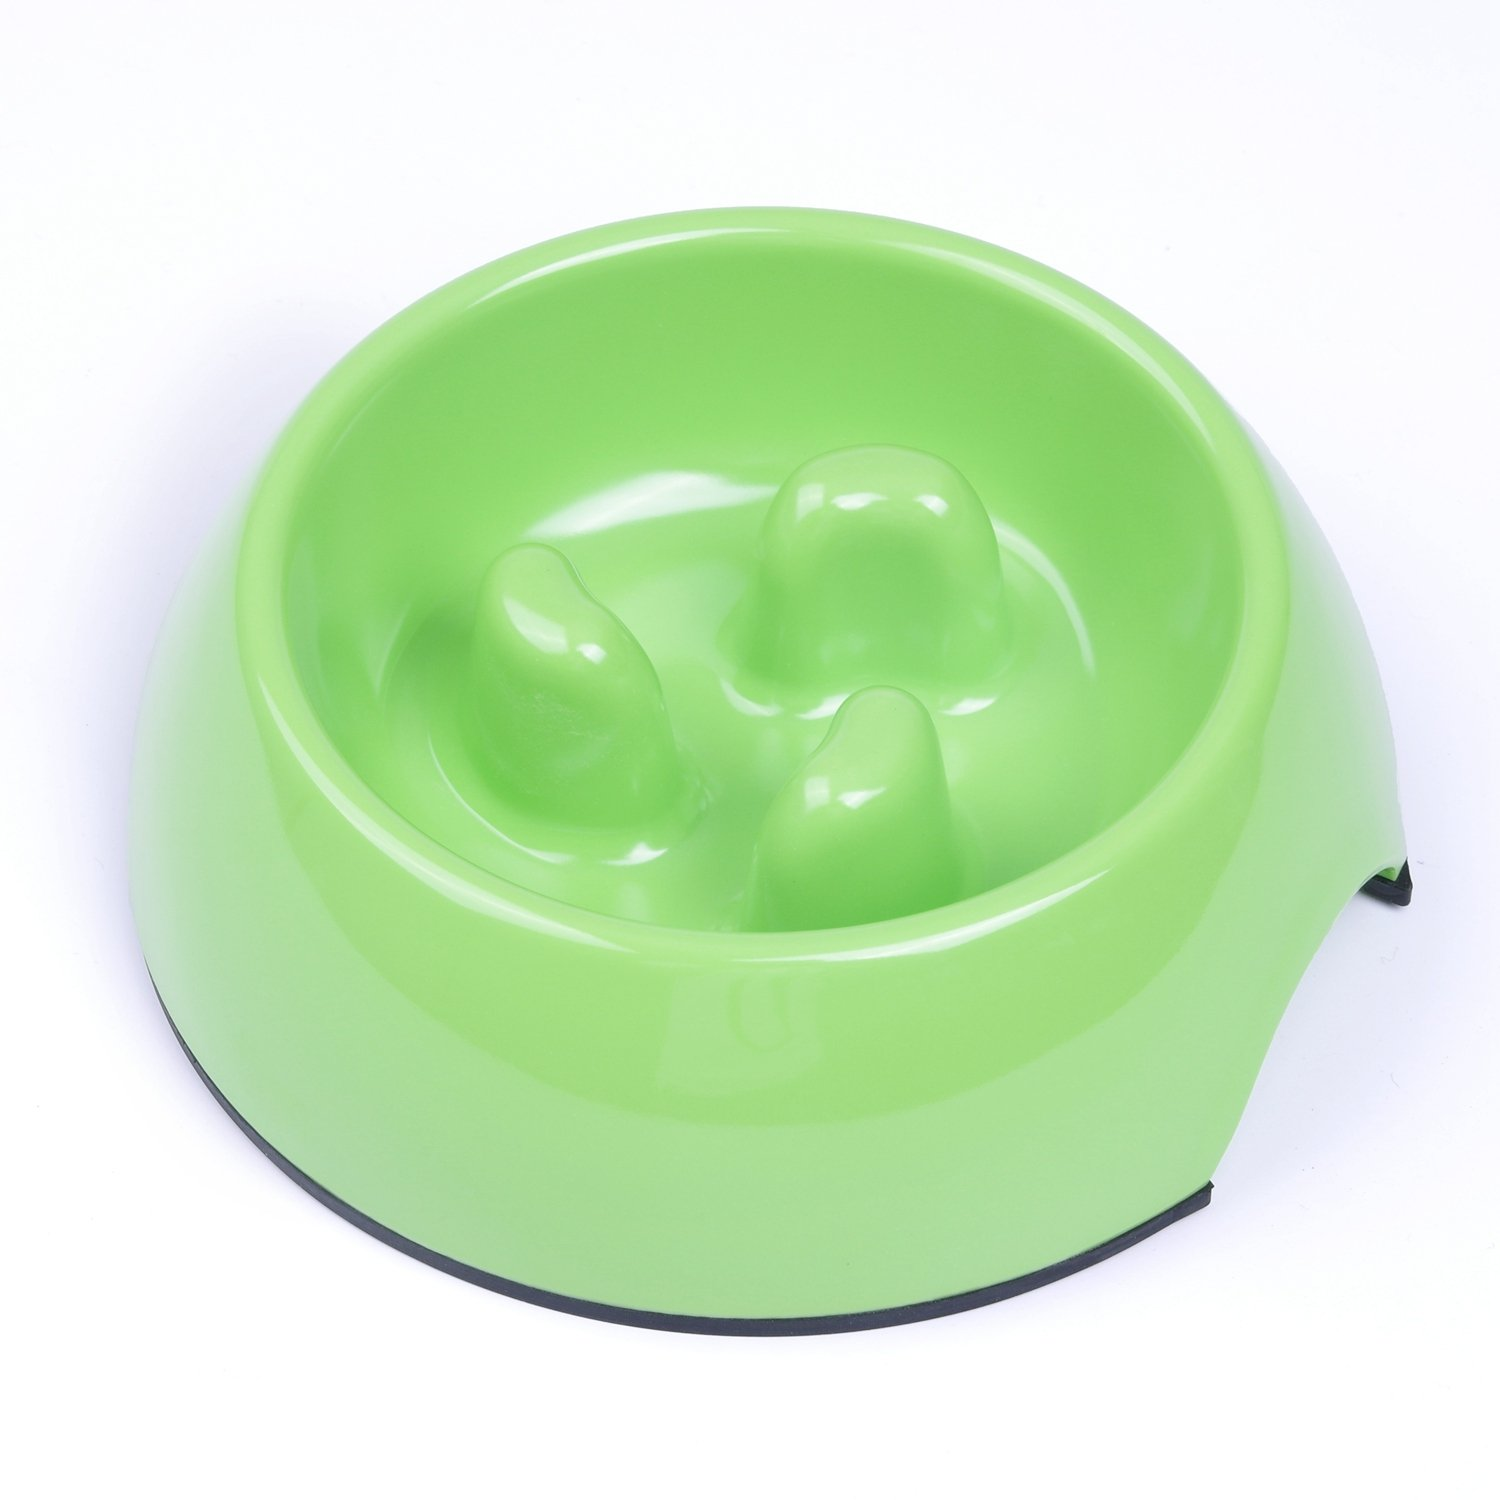 SuperDesign Heavy Duty Melamine Non-skid Slow Feed Pet Bowl For Dogs and Cats